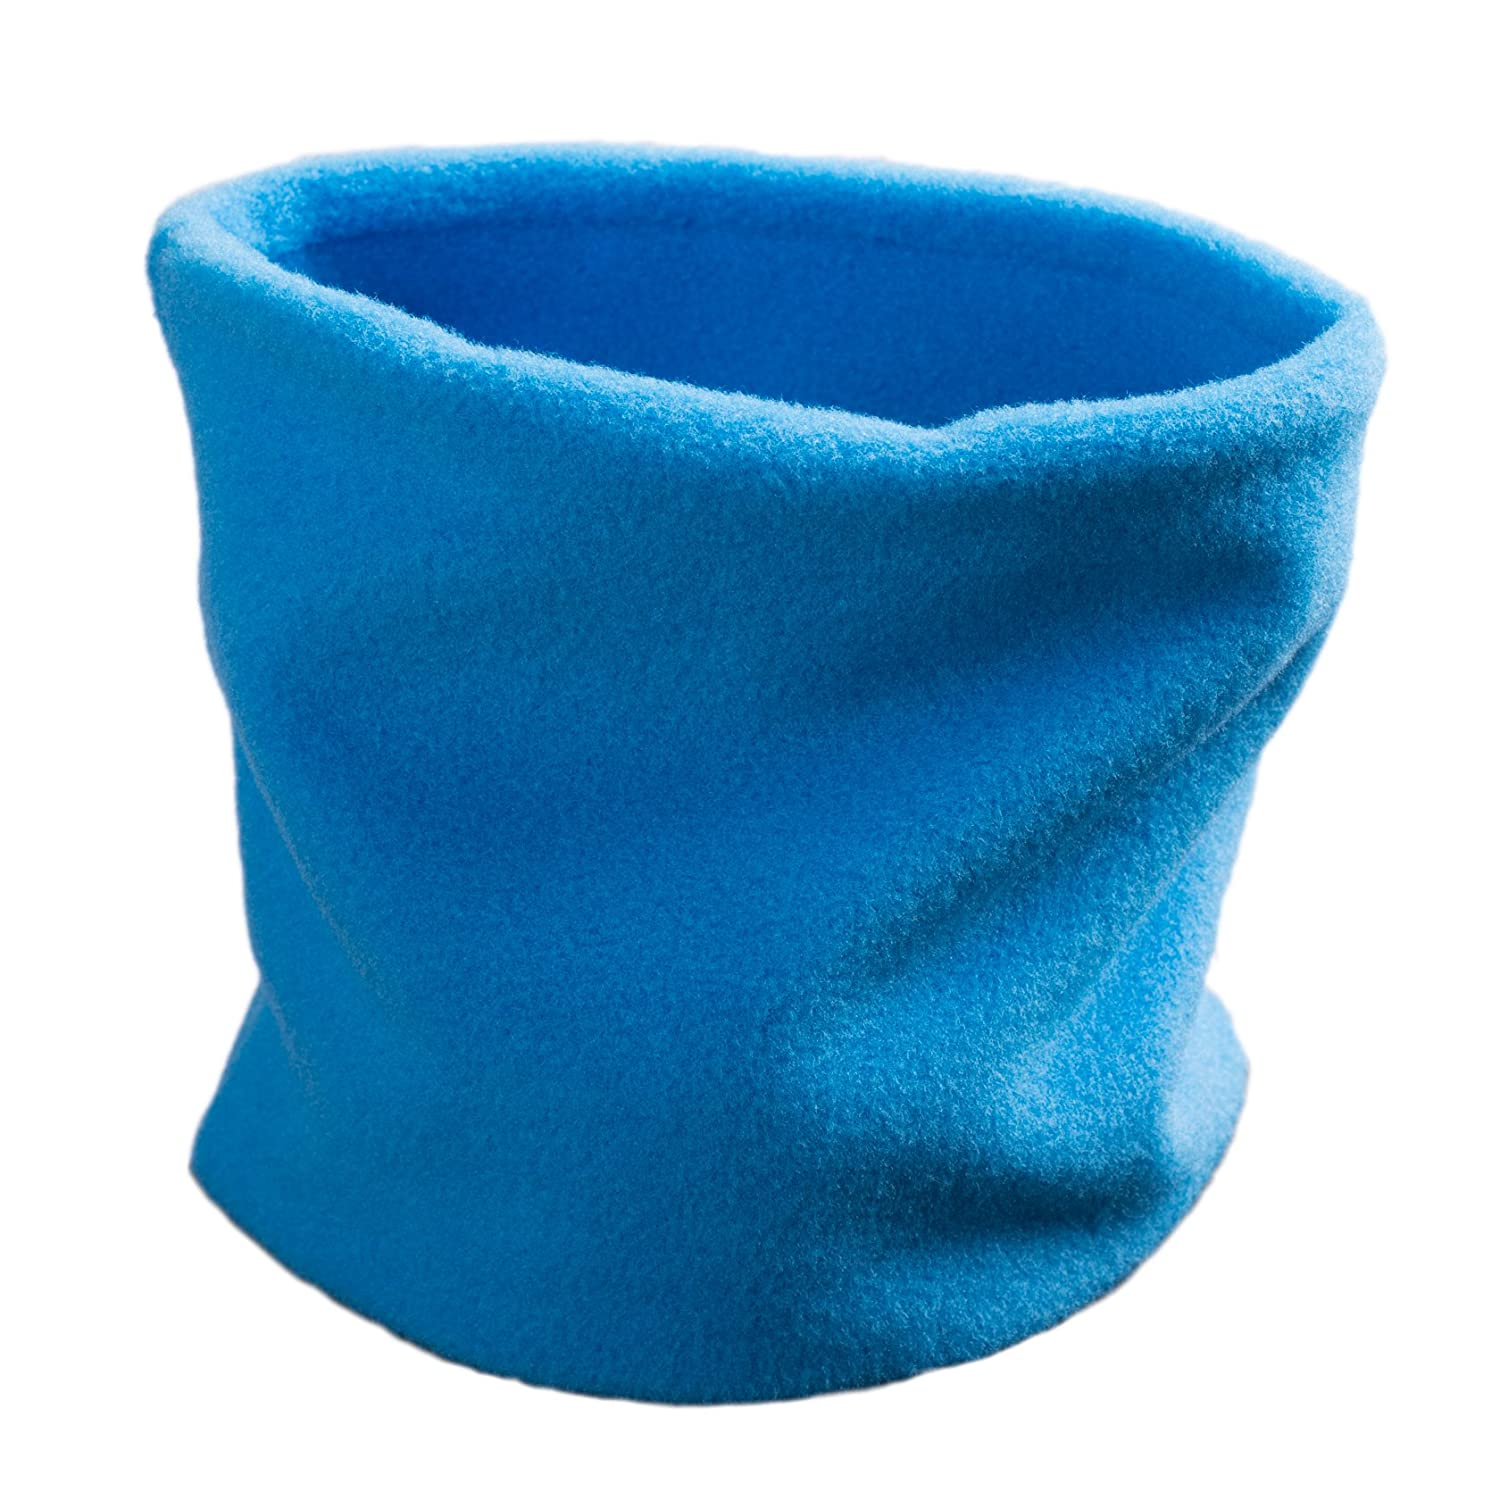 Lupa Kids Canadian Handmade 2-Ply Micro-Fleece Neck Warmer/Gaiter